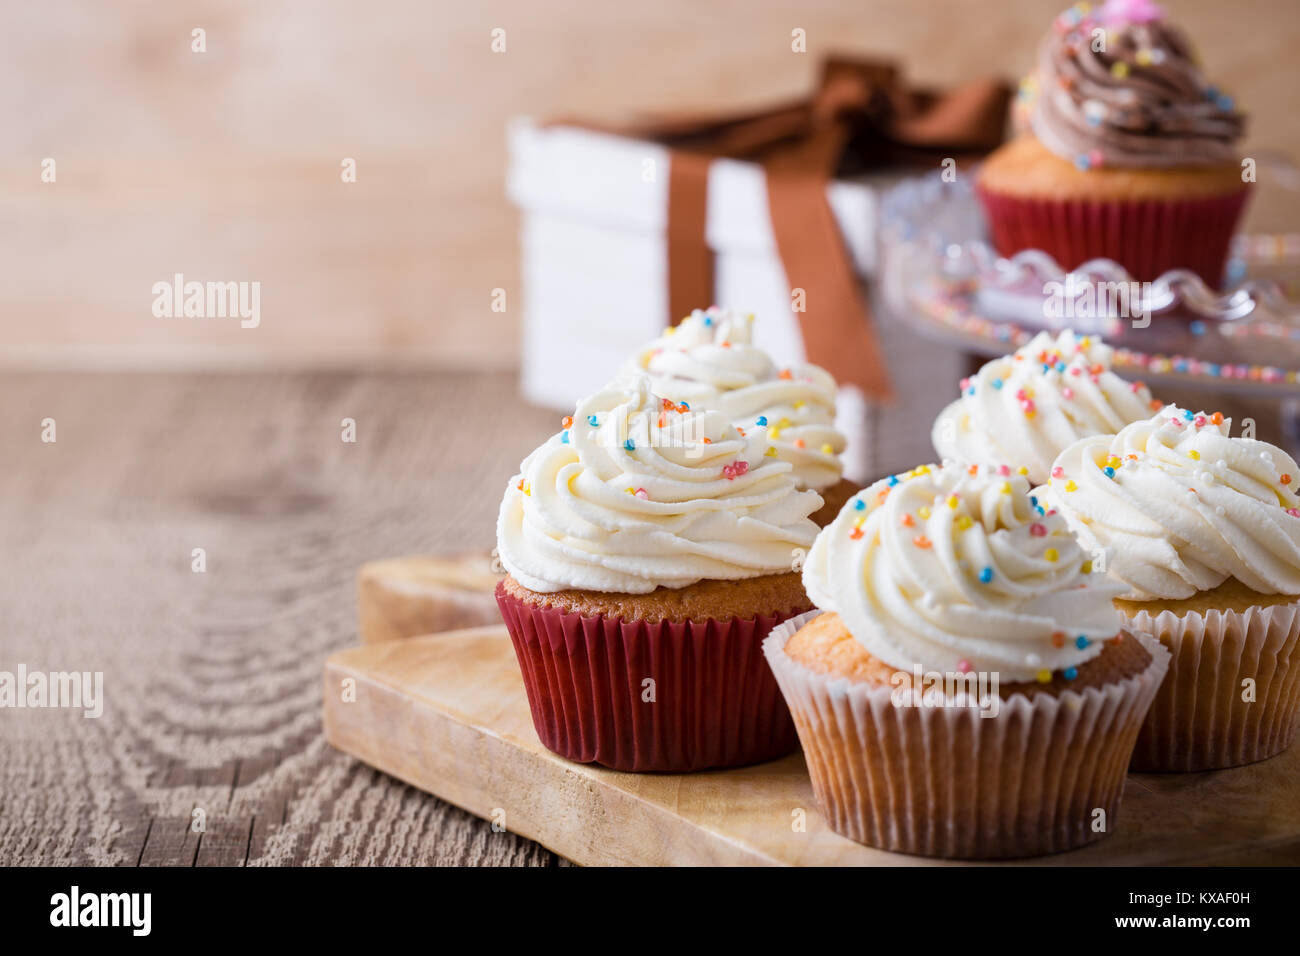 Delicious birthday cupcakes on wooden table - Stock Image